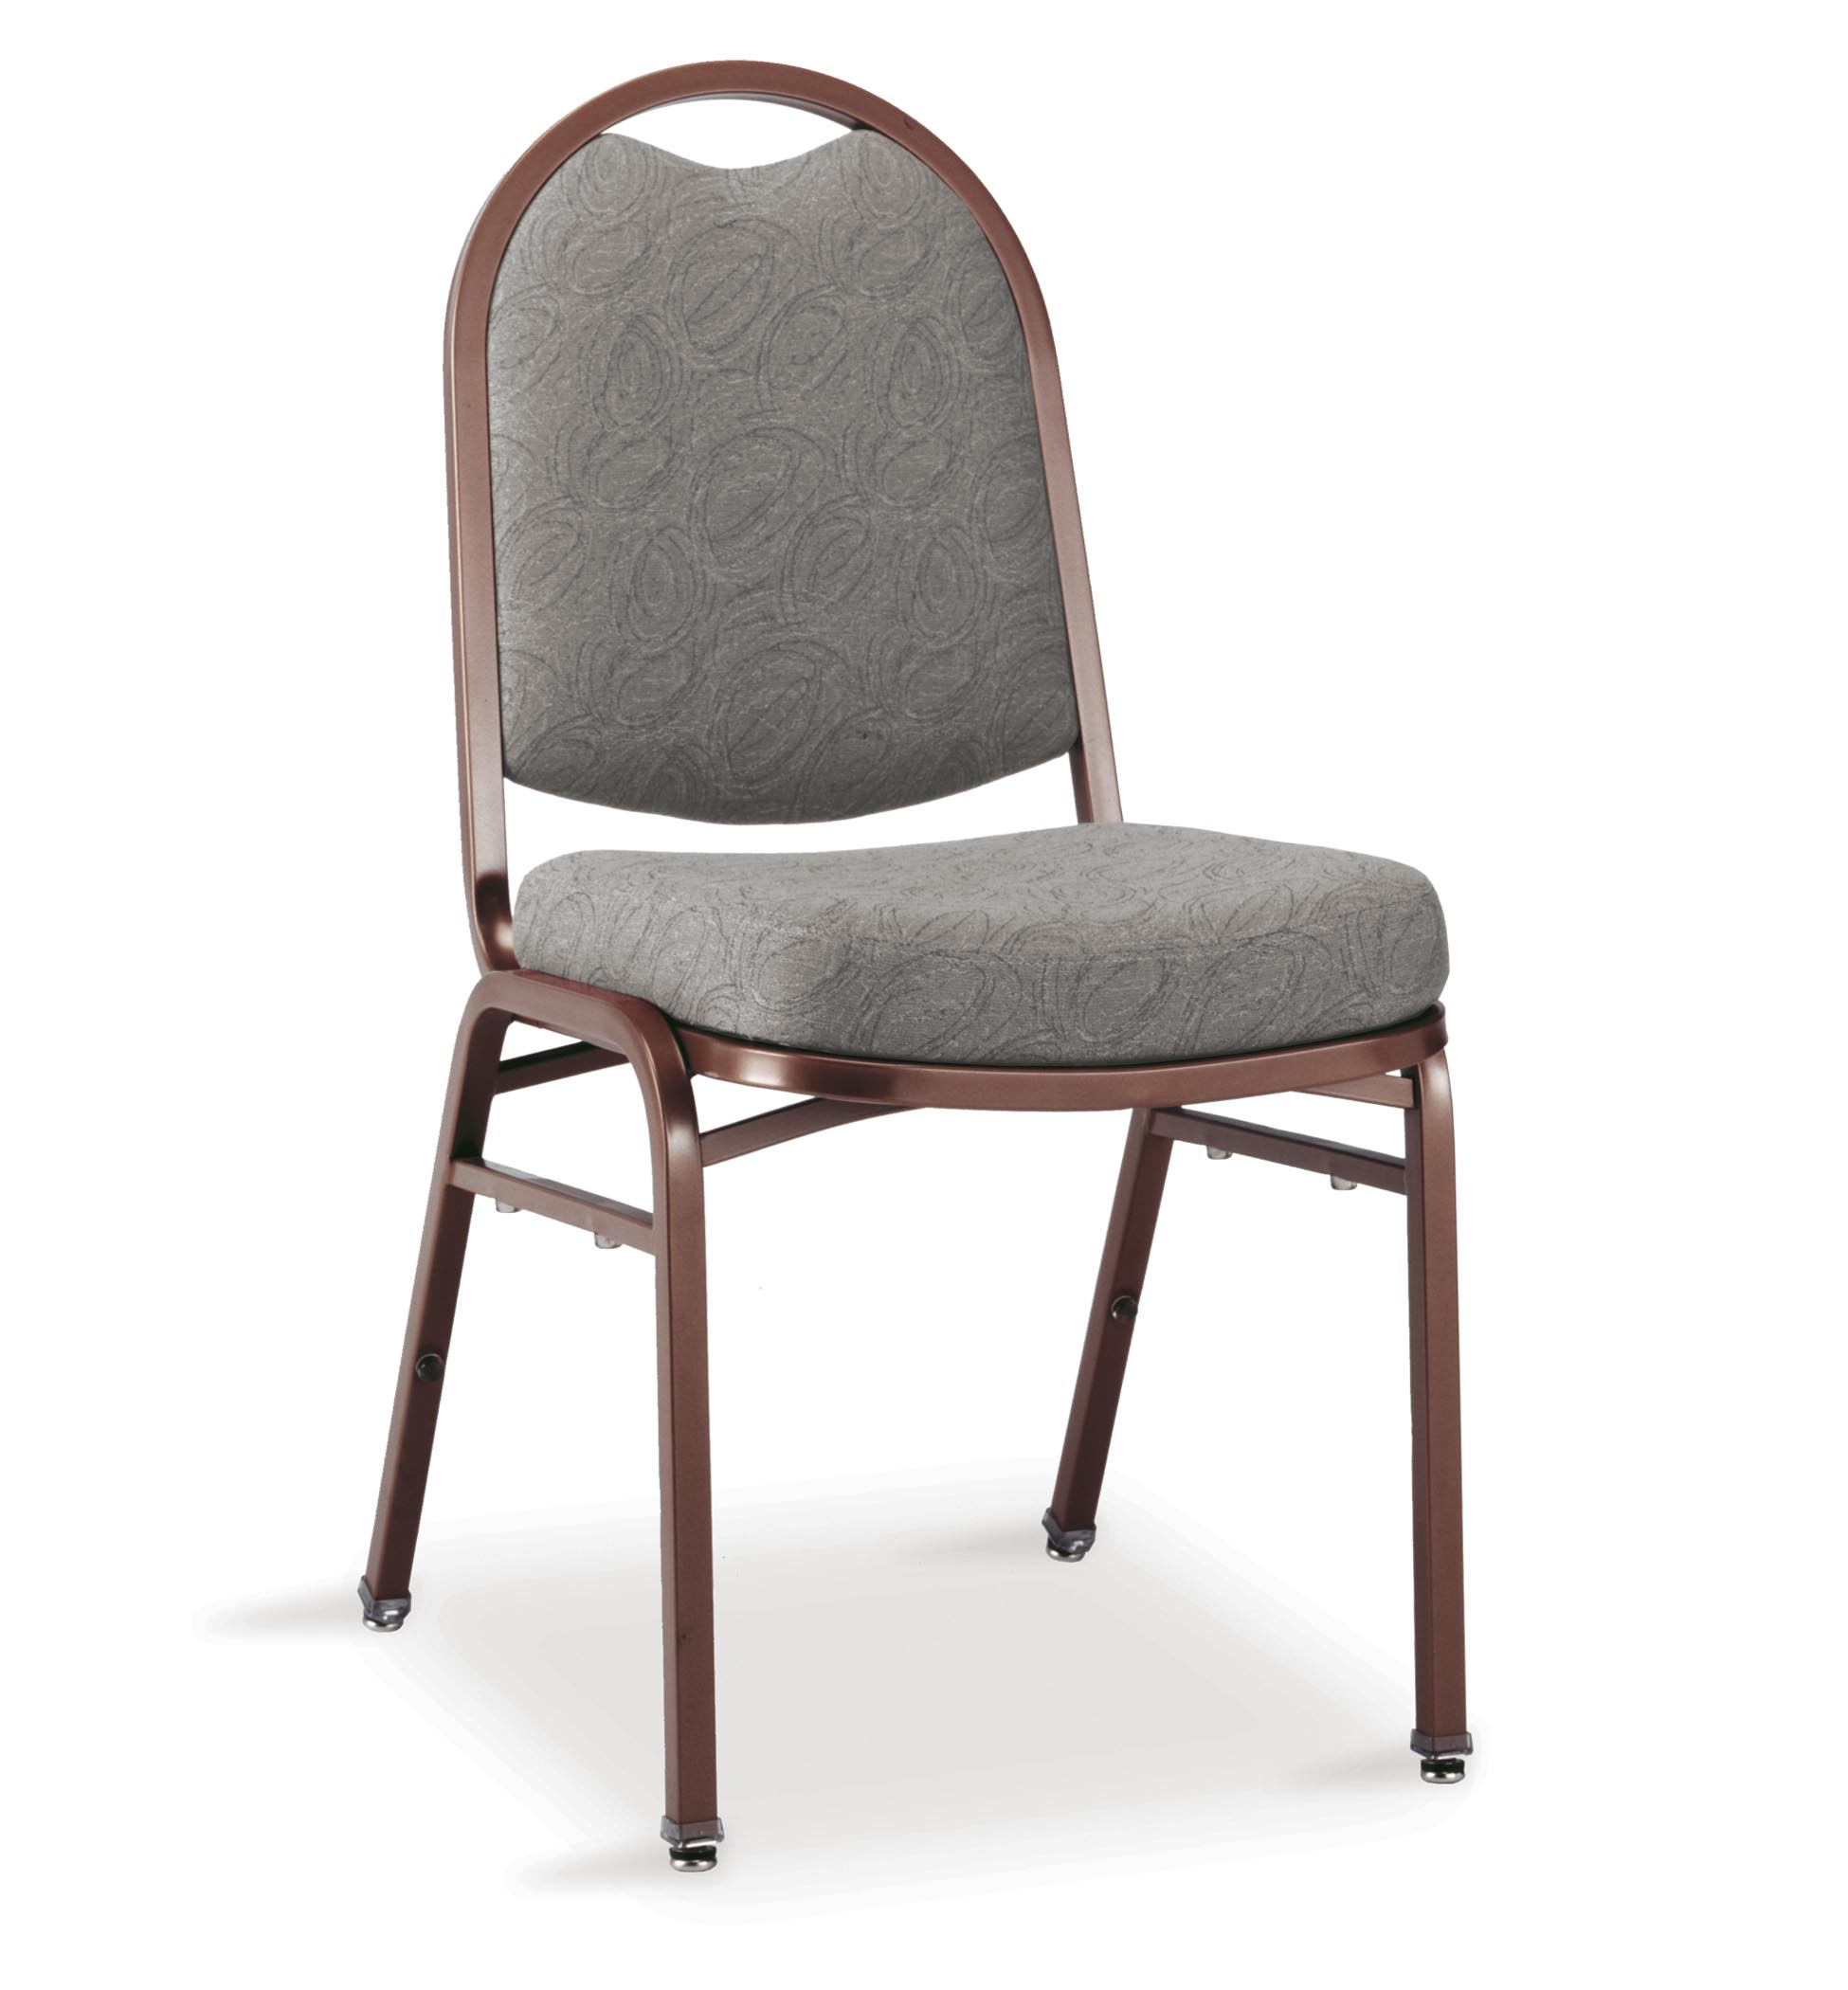 Metal Chairs 5231p Steel Banquet Chair